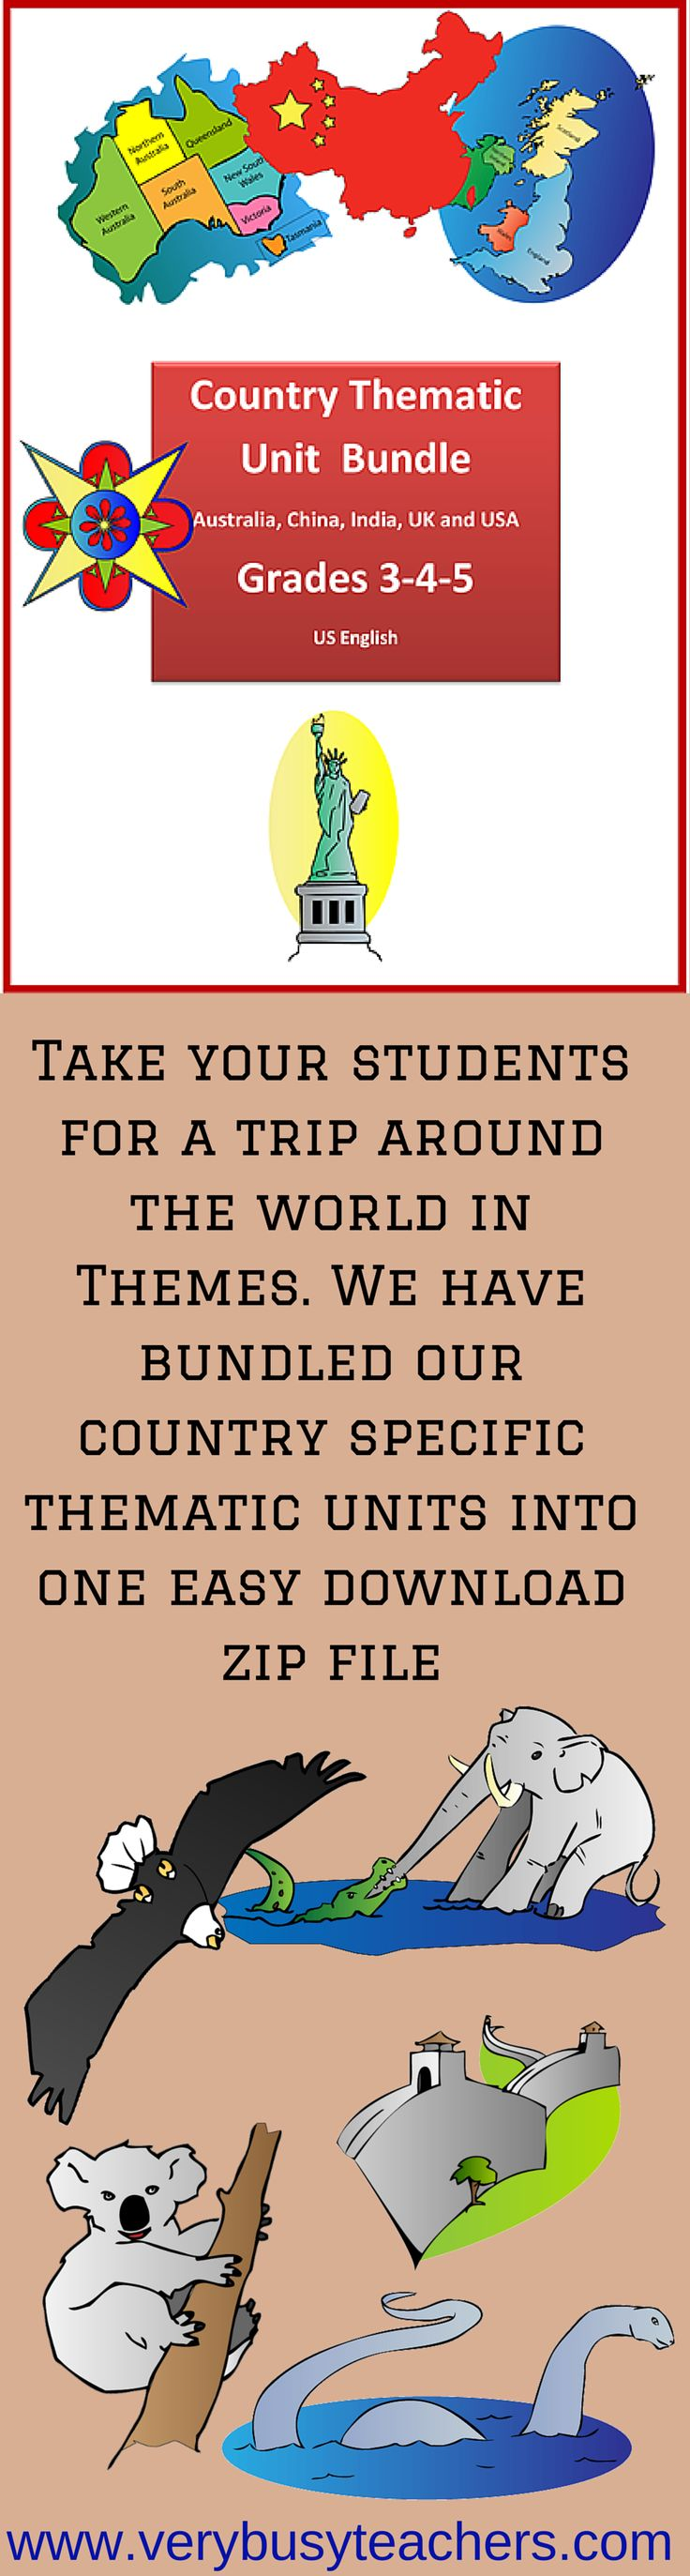 This bundled resource contains the following files: Australia Thematic Unit Grades 3-4-5 China Thematic Unit Grades 2-3 China Thematic Unit Grades 4-5 India Thematic Unit Grades 3-4-5 United KingdomThematic Unit Grades 3-4-5 United States Thematic Unit Grades 3-4-5 http://www.teacherspayteachers.com/Product/Country-Thematic-Units-Bundle-for-Grades-3-4-5-977334